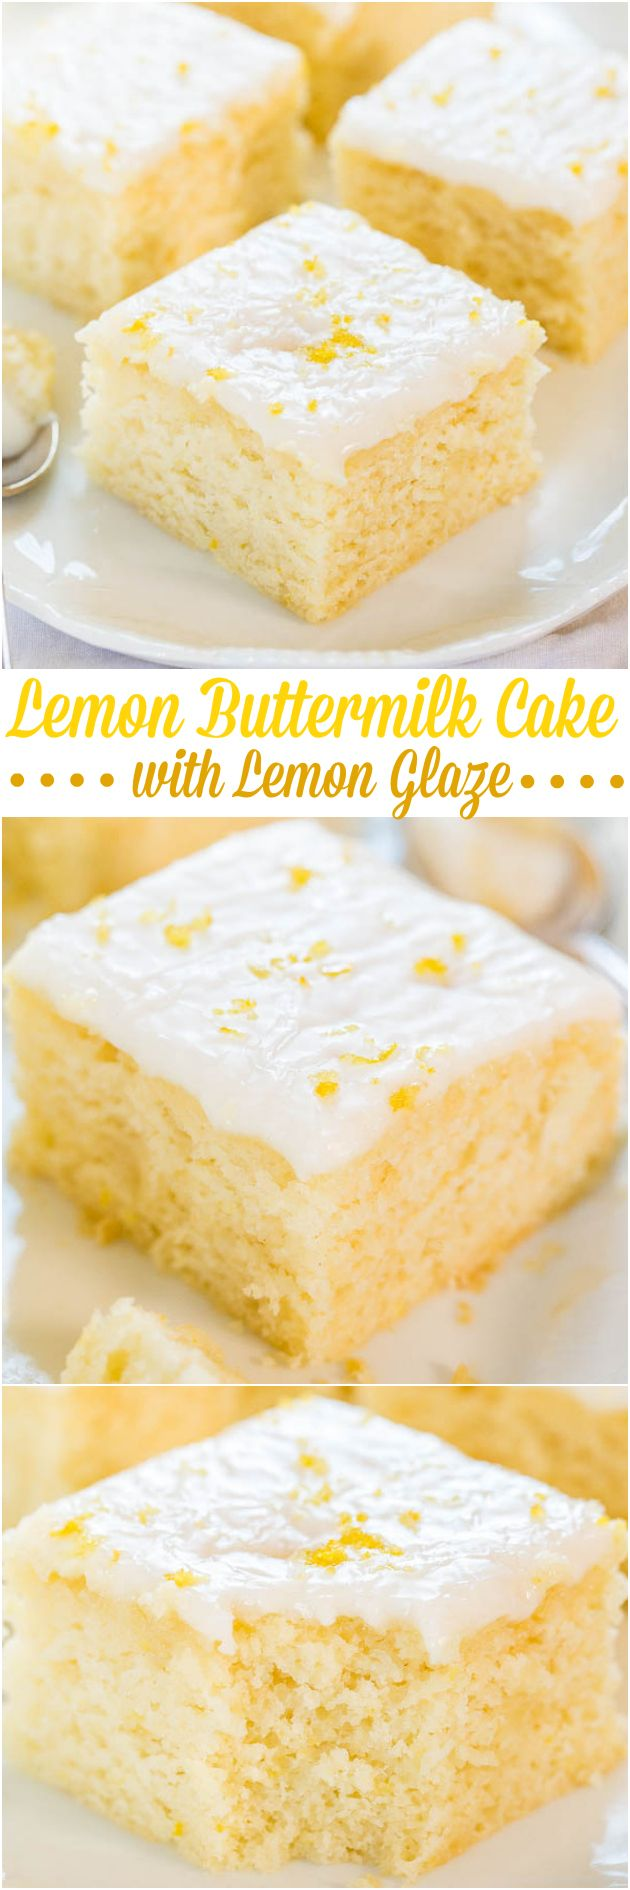 Lemon Buttermilk Cake with Lemon Glaze - An easy little cake with big lemon flavor!! Soft, fluffy, and foolproof if you like puckering up! Great springtime cake for #Easter, #MothersDay and #Brunch !